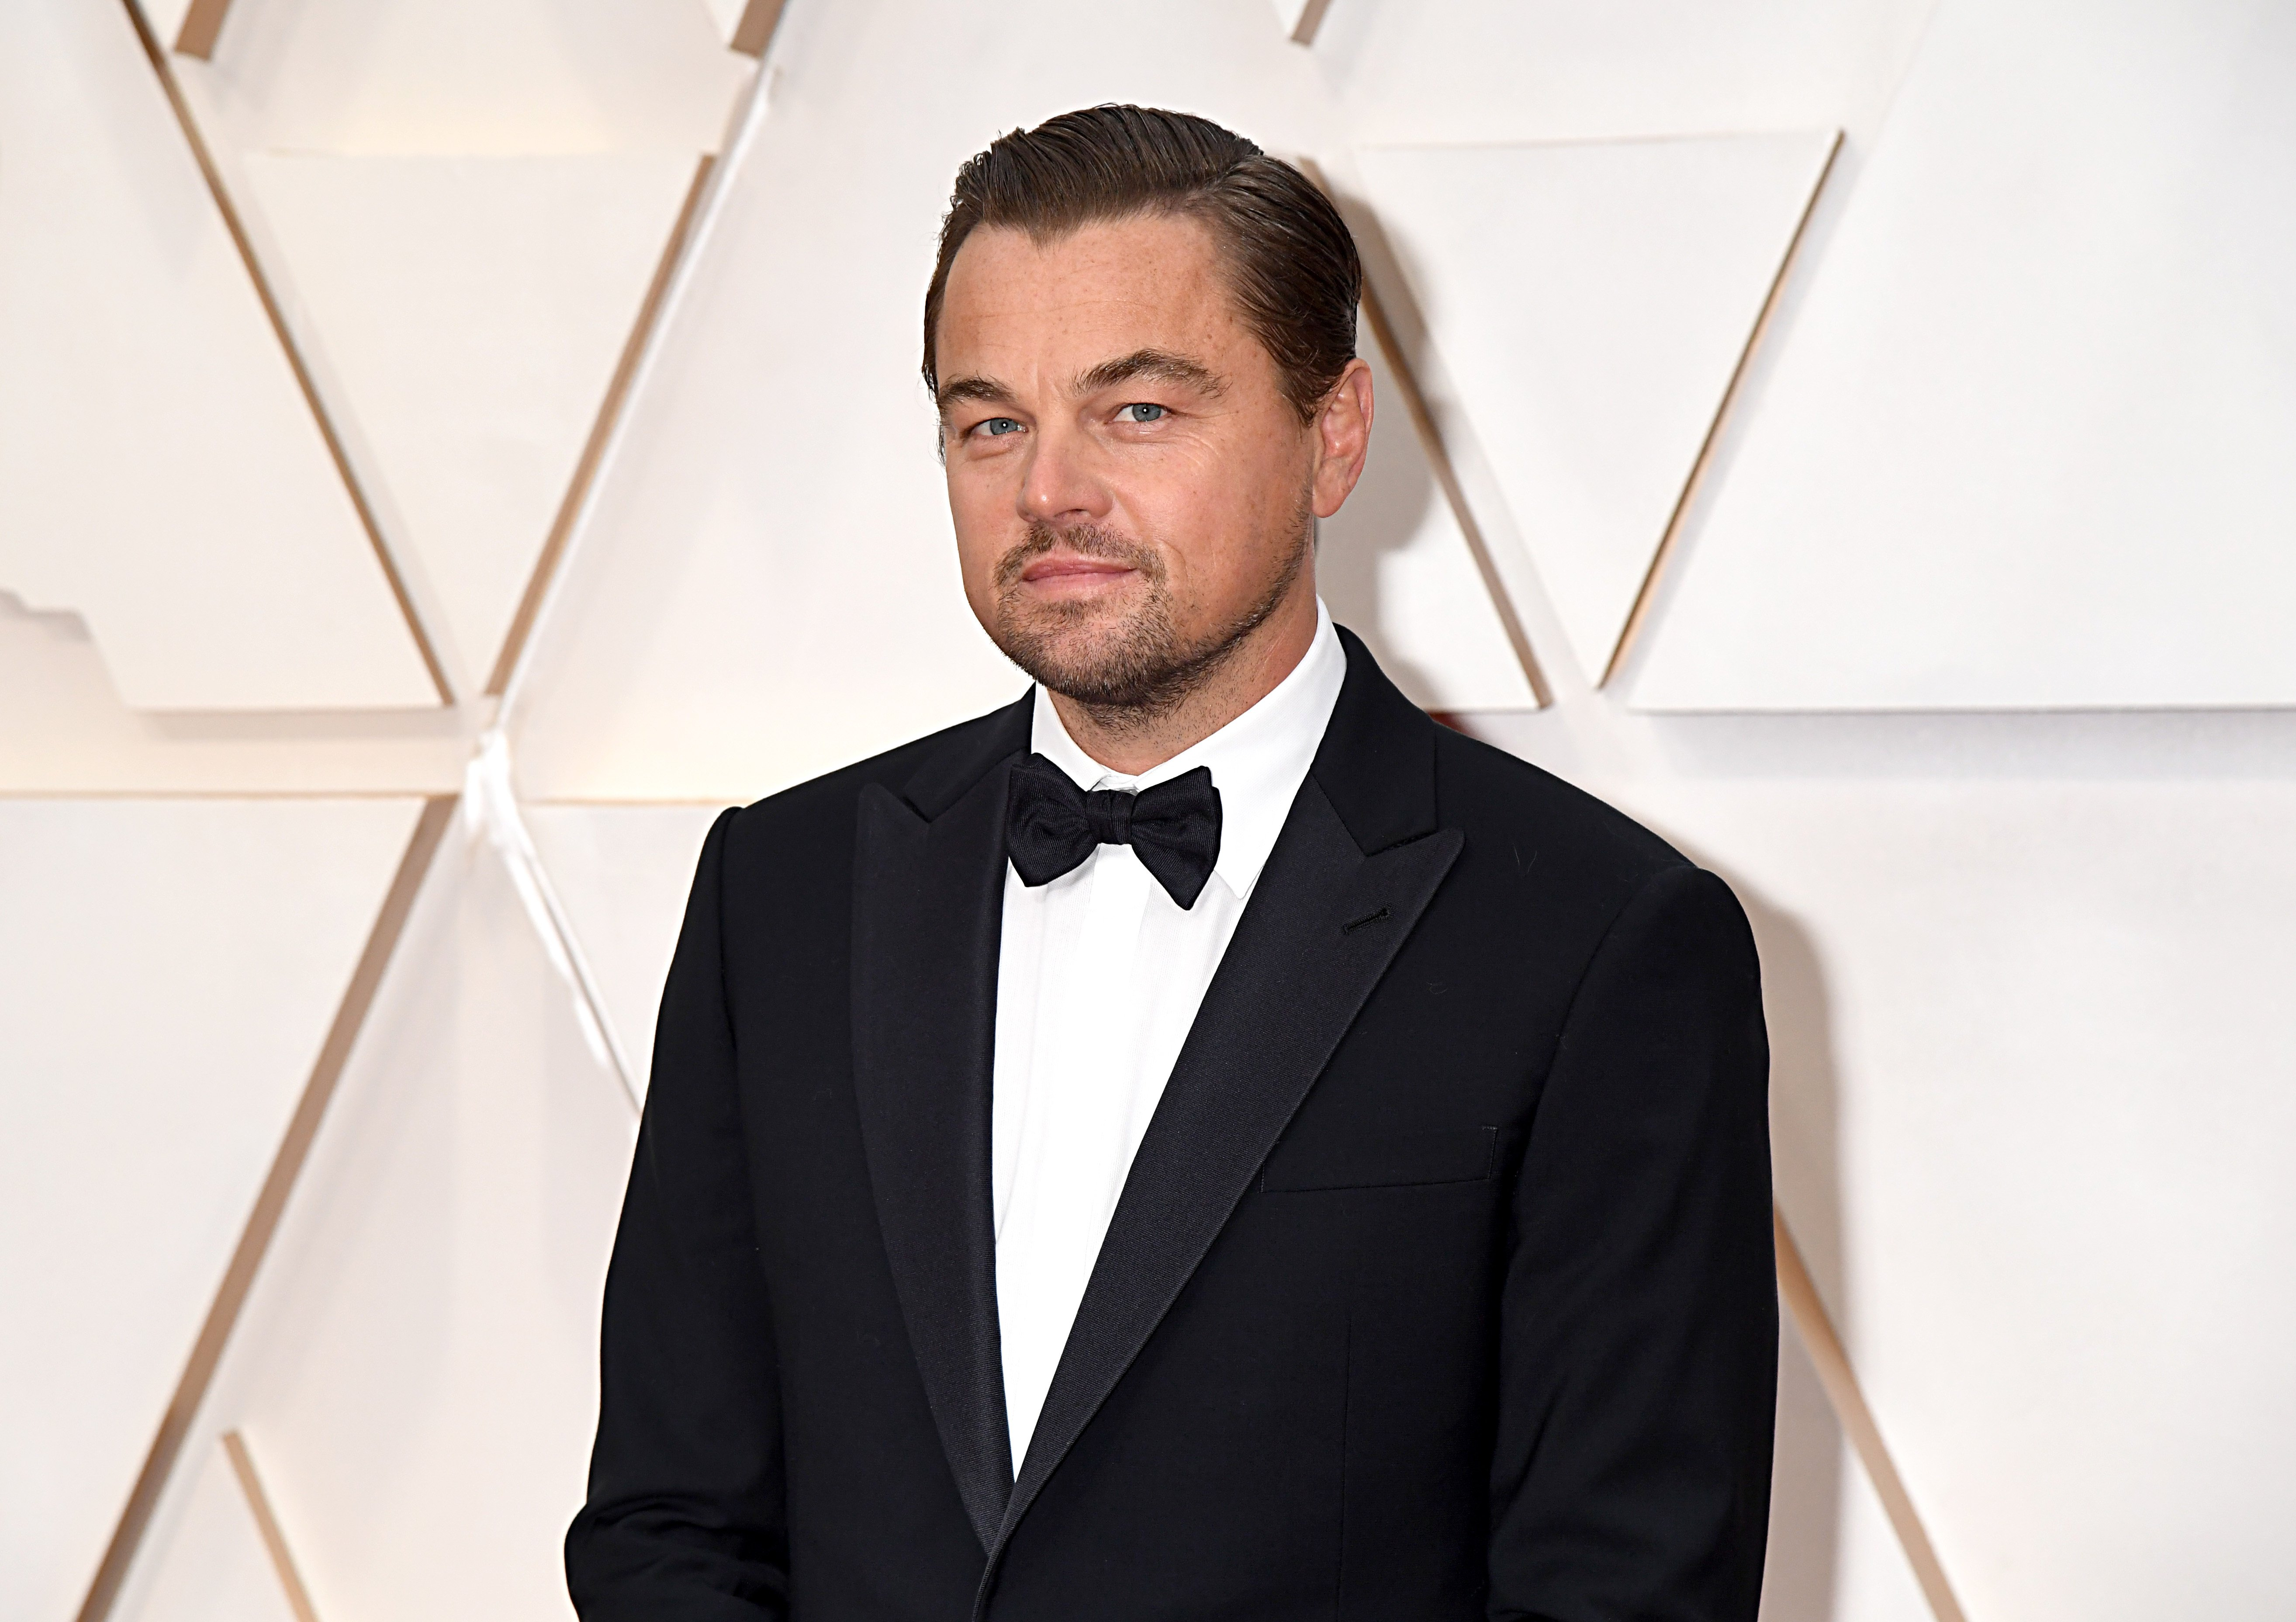 Leonardo DiCaprio attends the 92nd Annual Academy Awards in Hollywood, California on February 9, 2020 | Photo: Getty Images